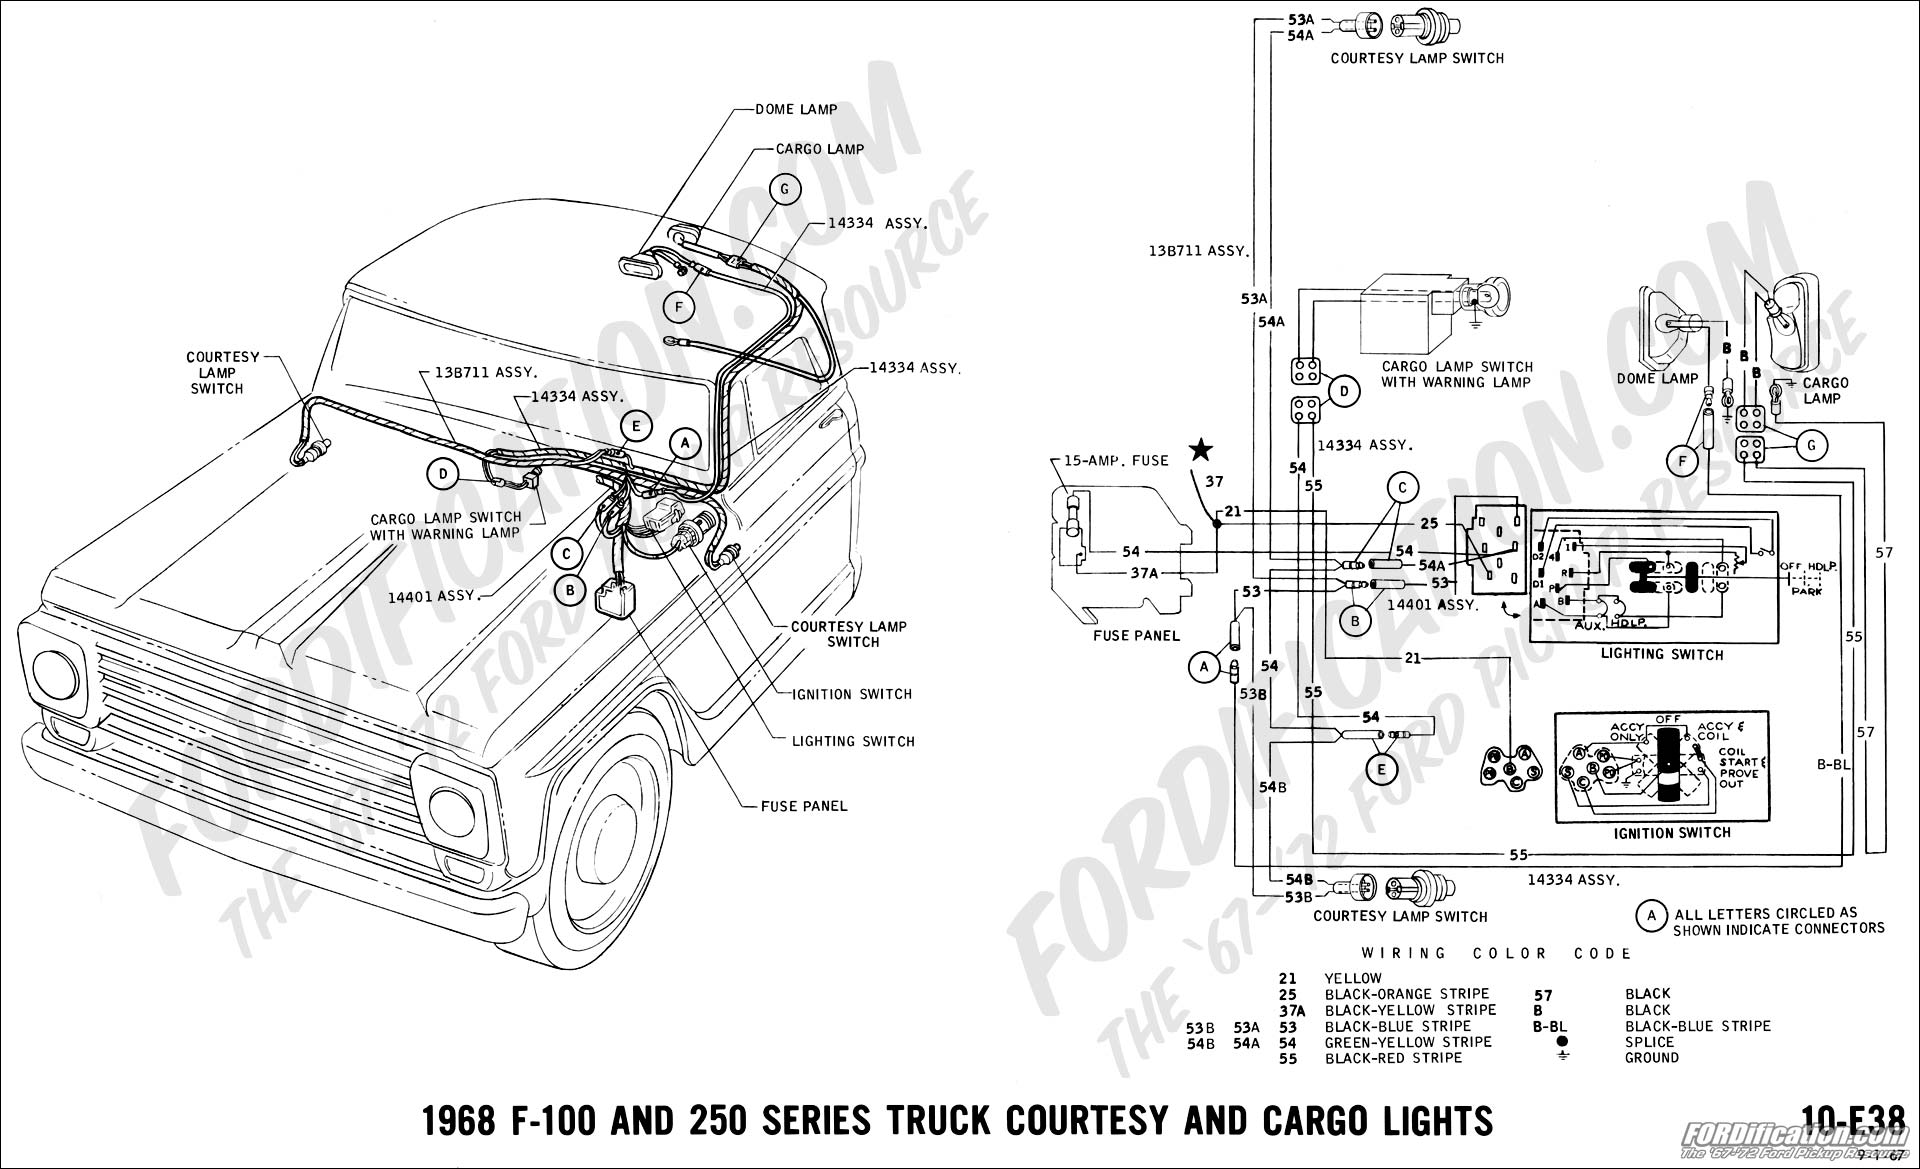 68 40 ford truck technical drawings and schematics section h wiring 1971 ford f250 wiring diagram at metegol.co